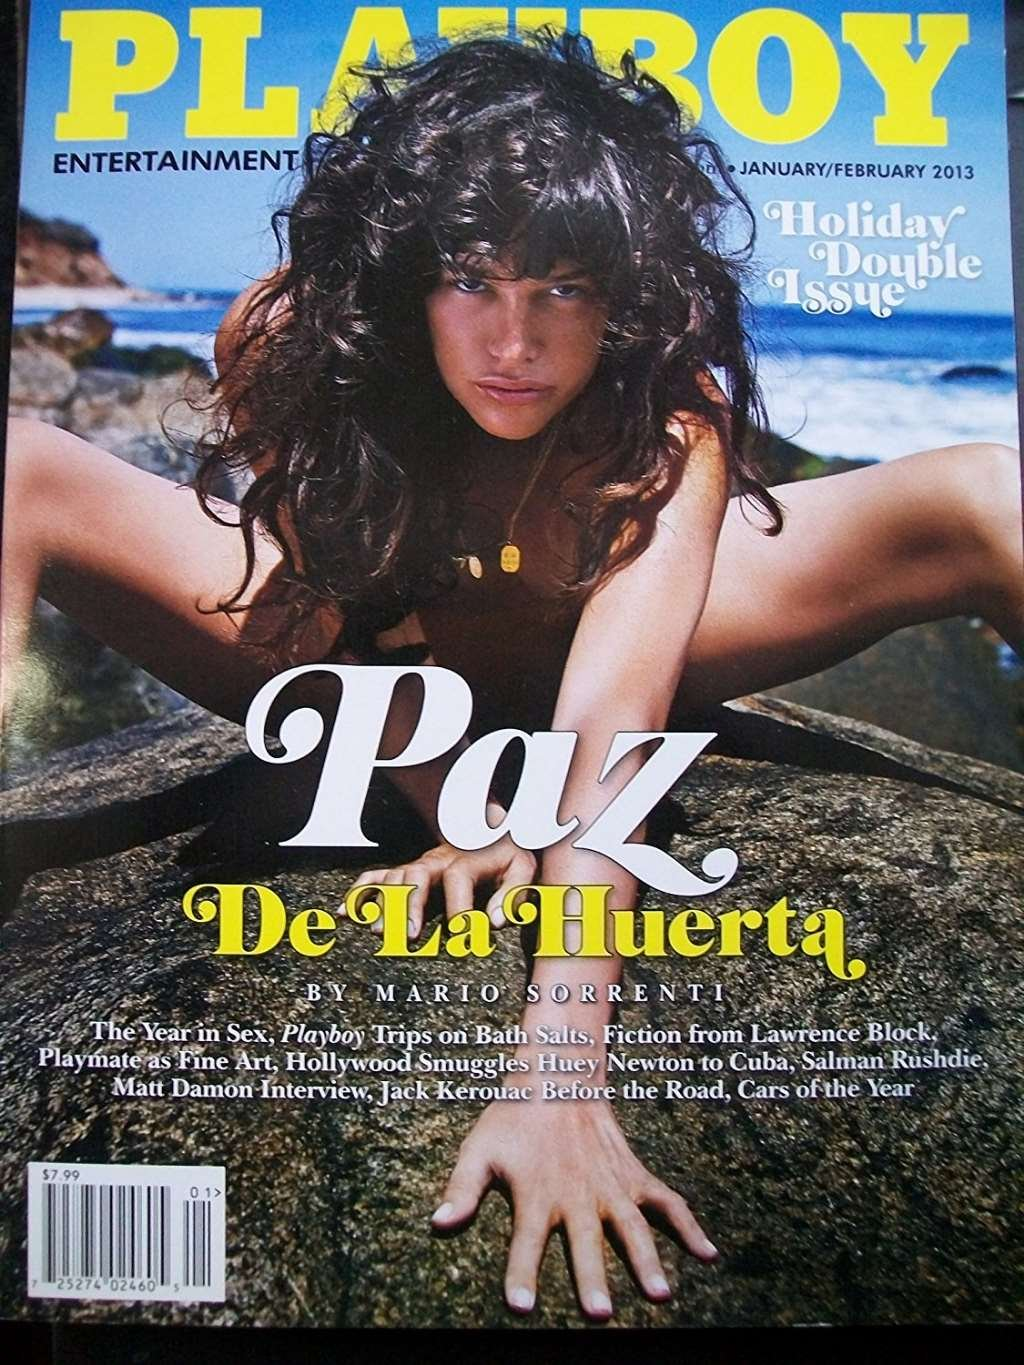 PLAYBOY MAGAZINE, ENTERTAINMENT FOR MEN JANUARY/FEBRUARY, 2013